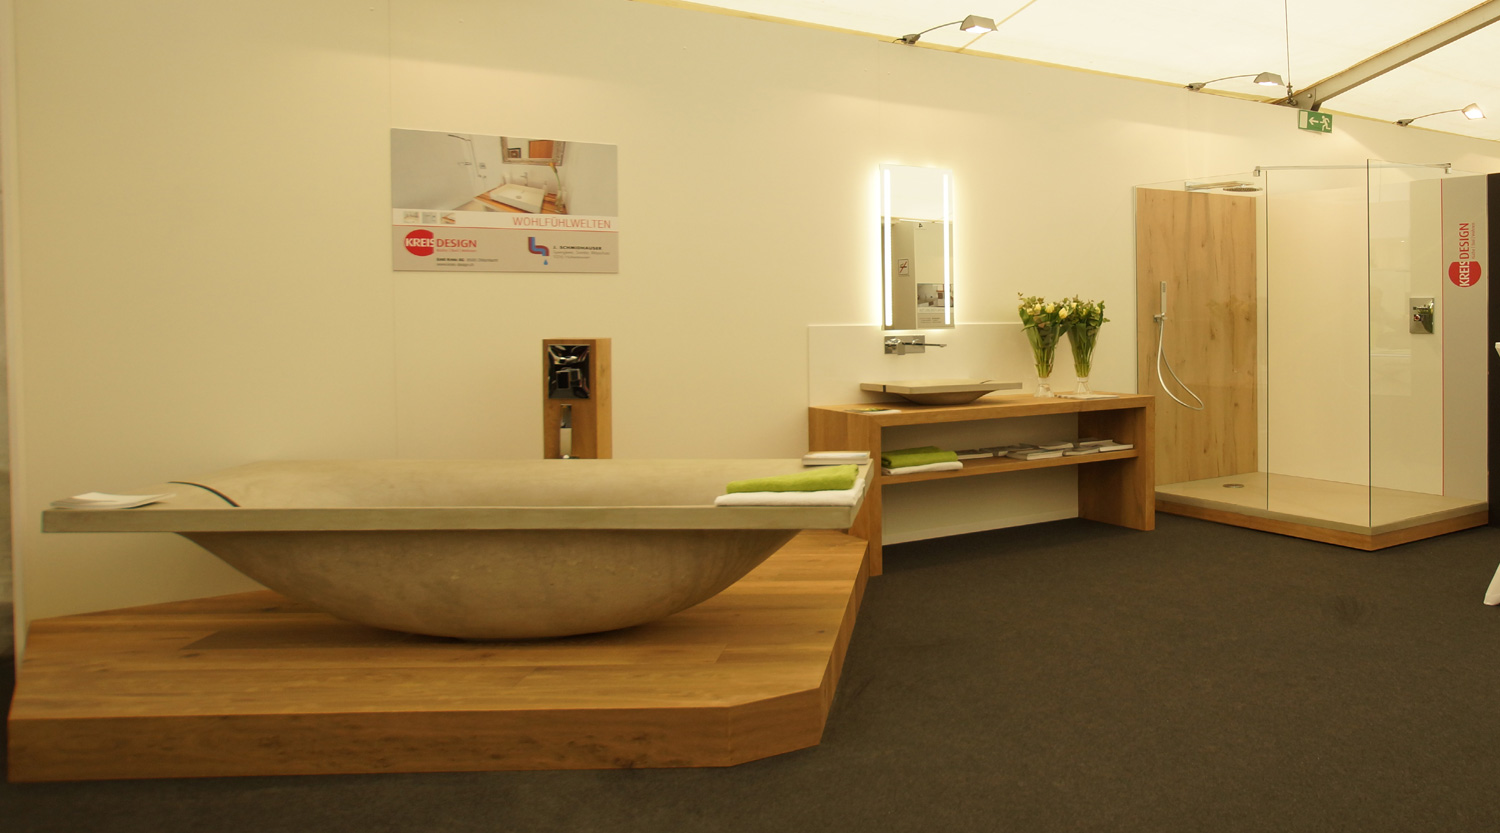 Kreis-Design_Wave-bathtub_exhibition-april15-WEB